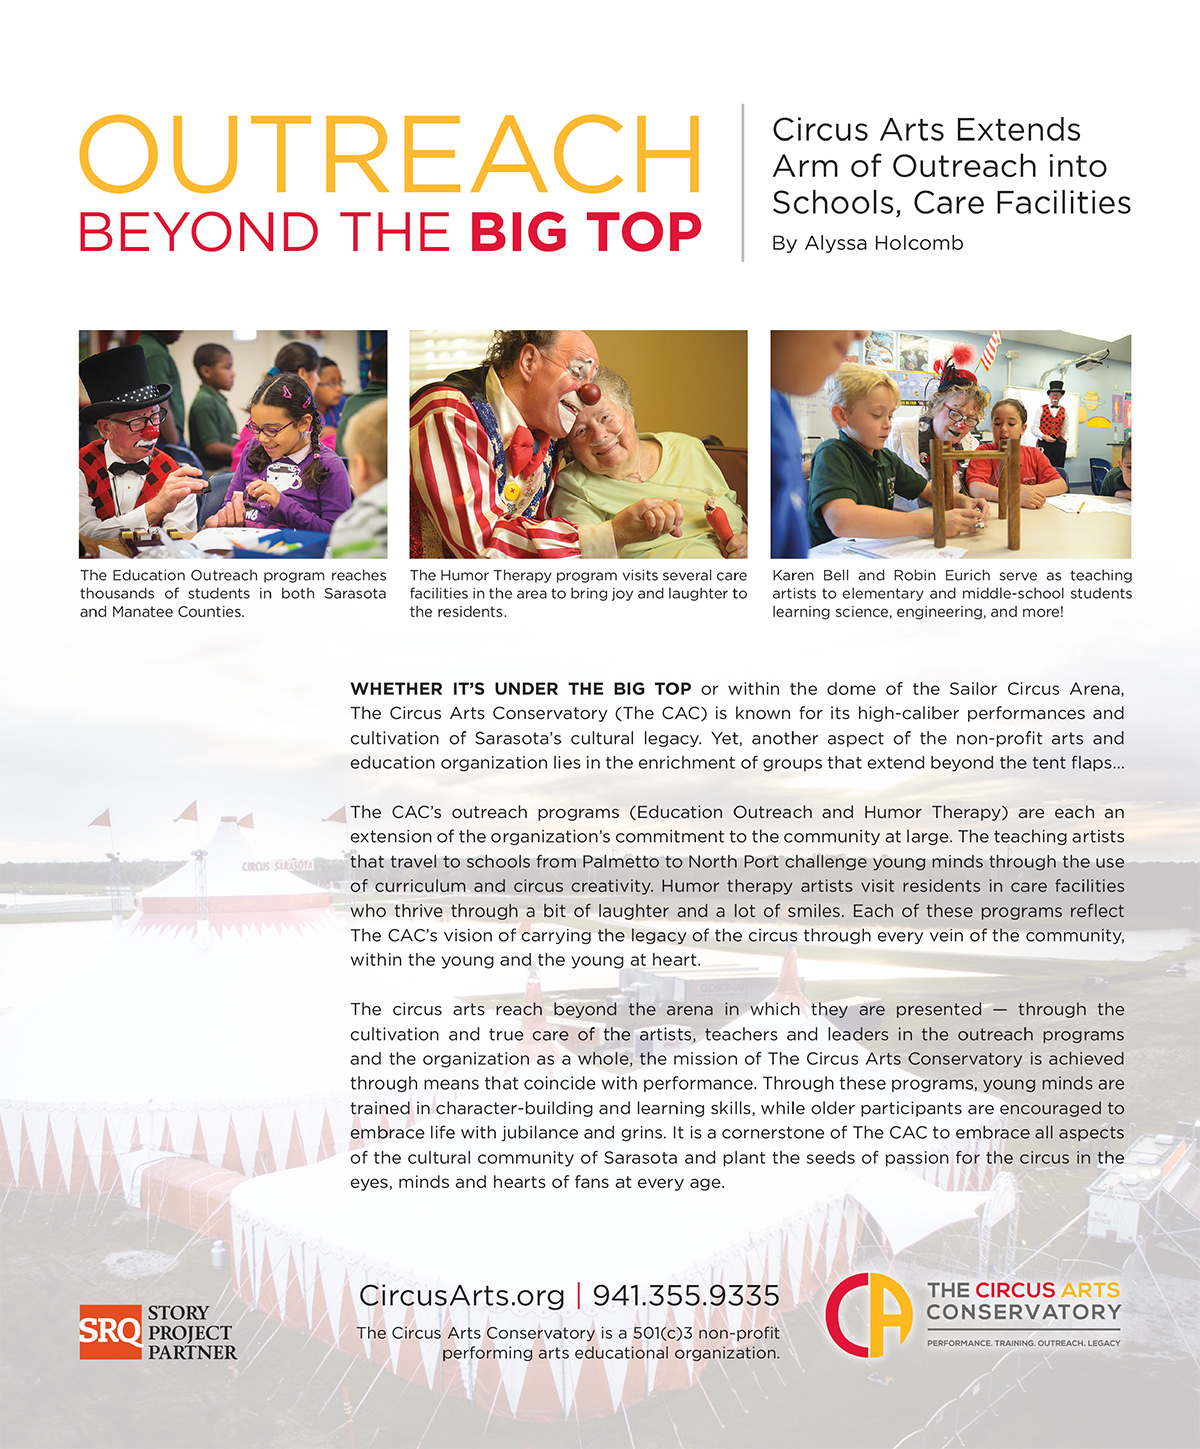 Outreach Beyond the Big Top